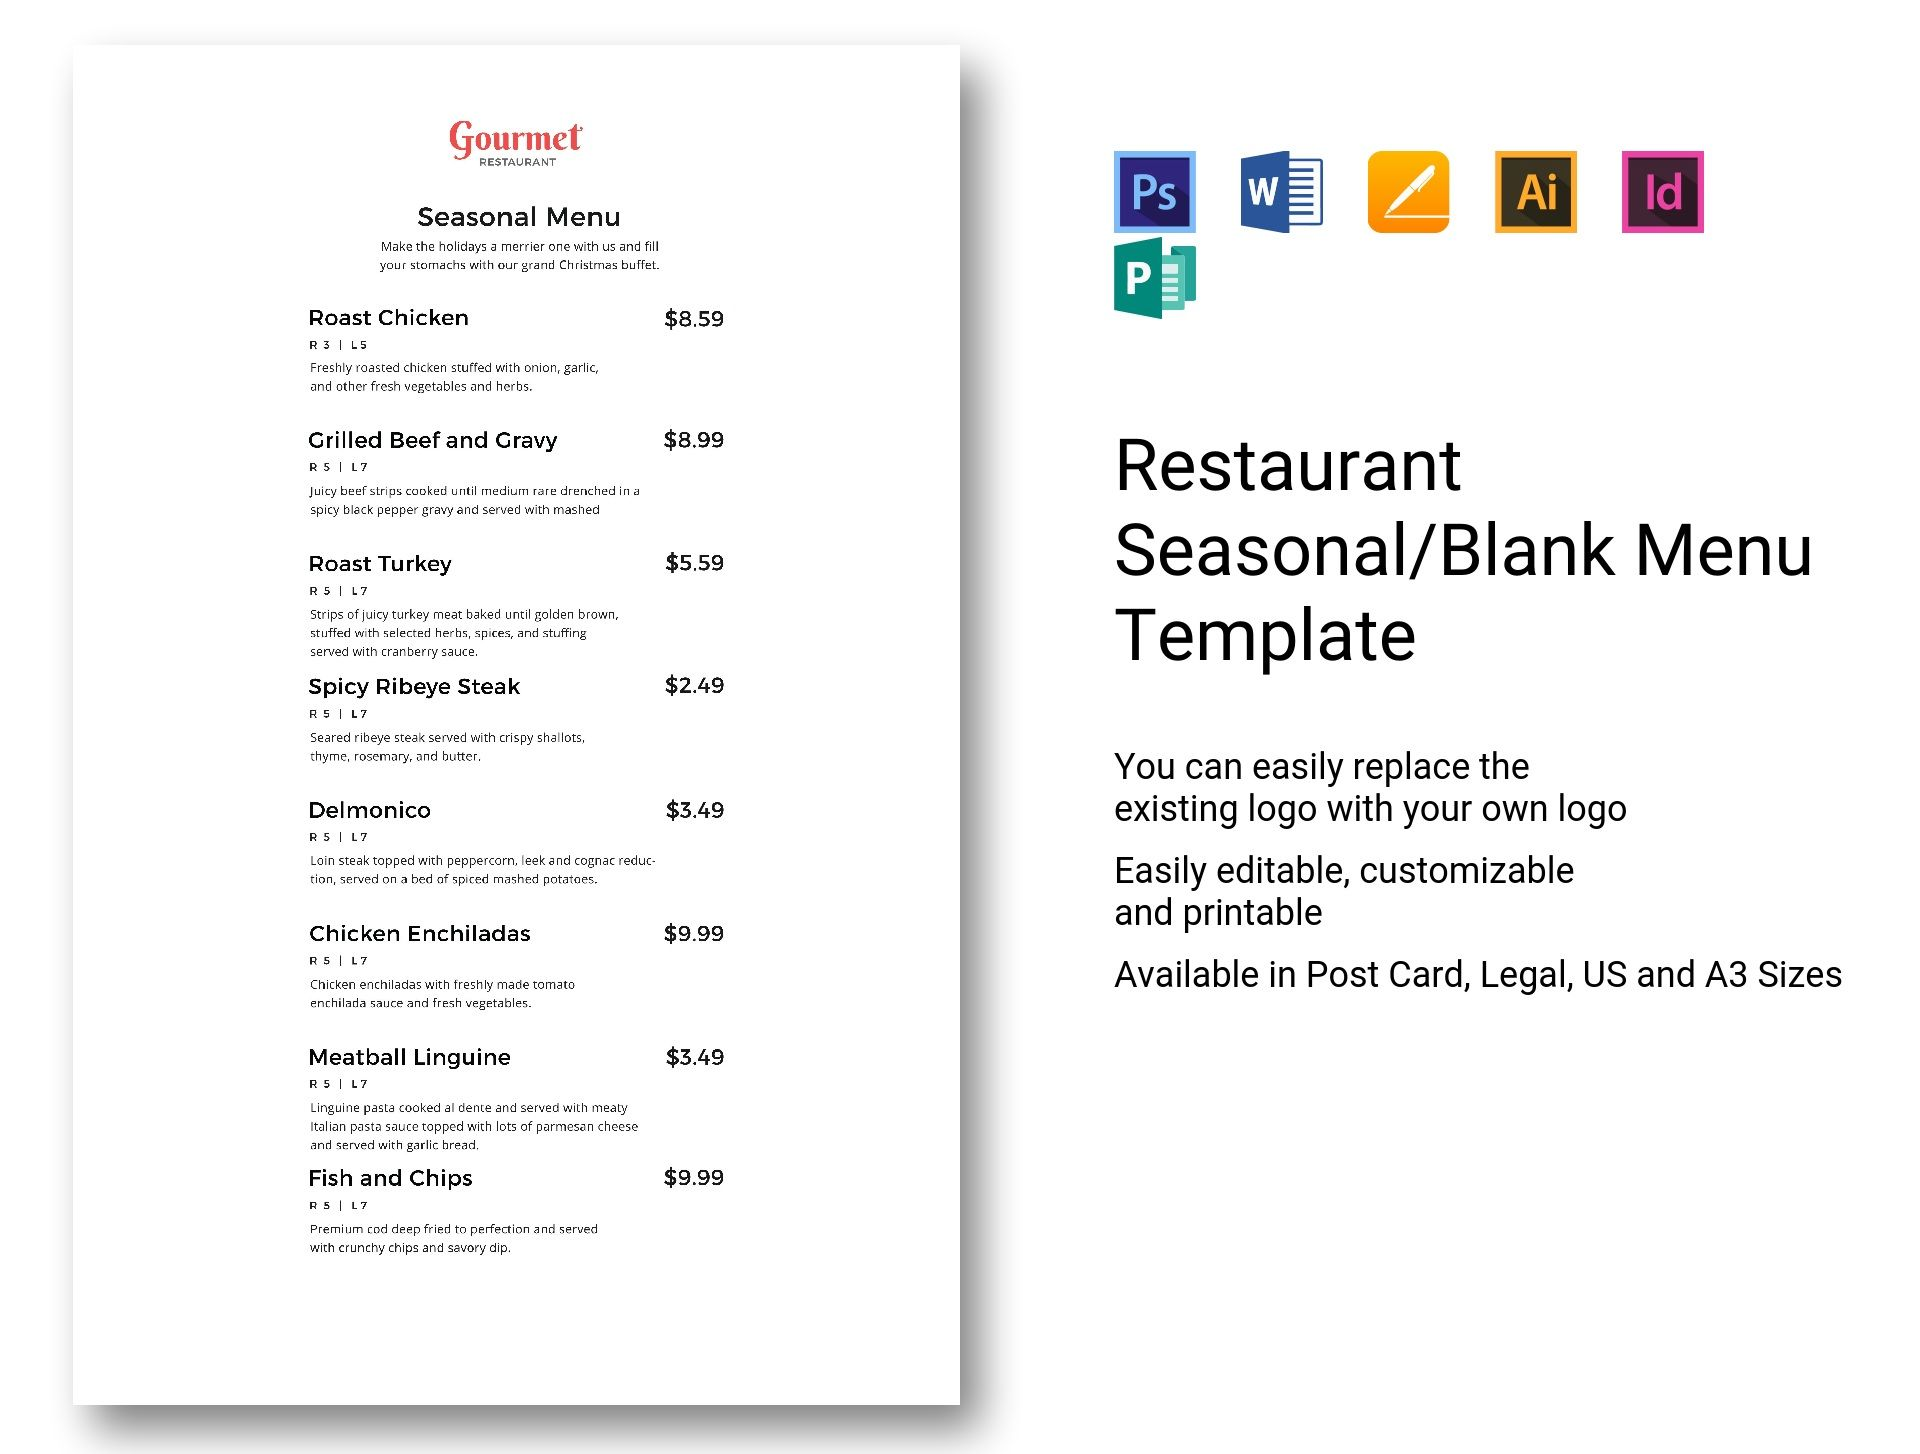 restaurant seasonal blank menu template in psd word publisher